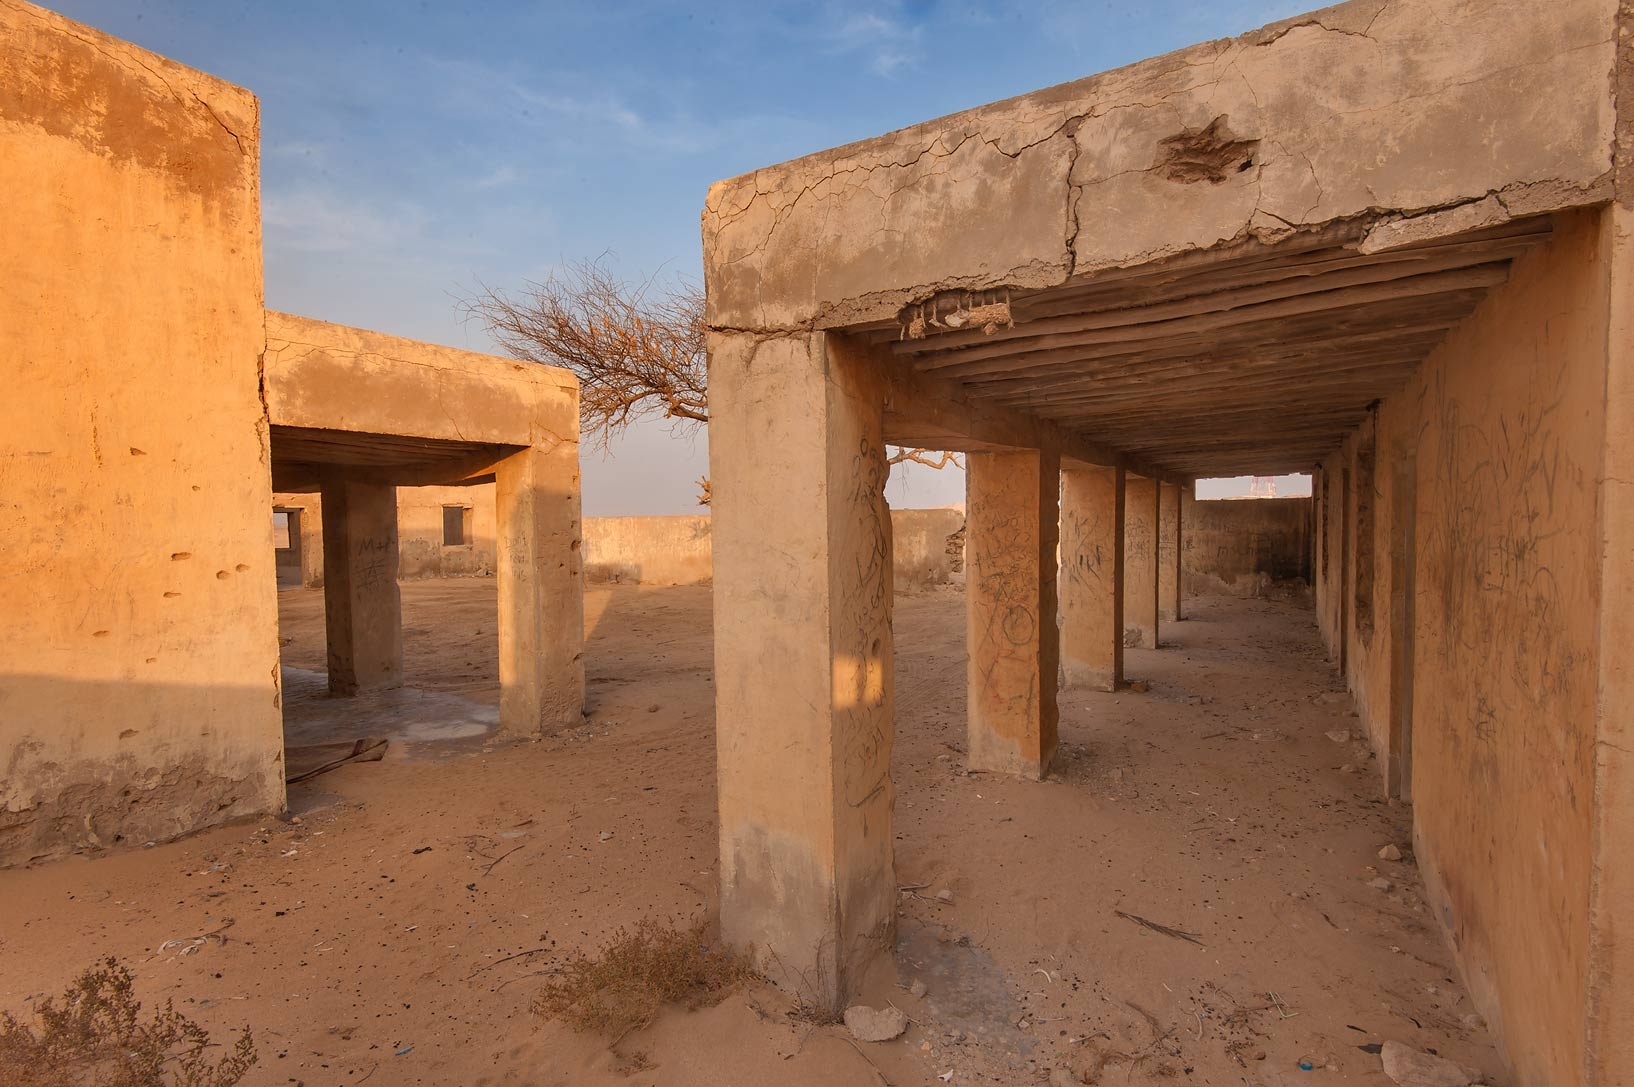 School courtyard at sunrise in old fishing...eastern coast, Ash Shamal area. Qatar